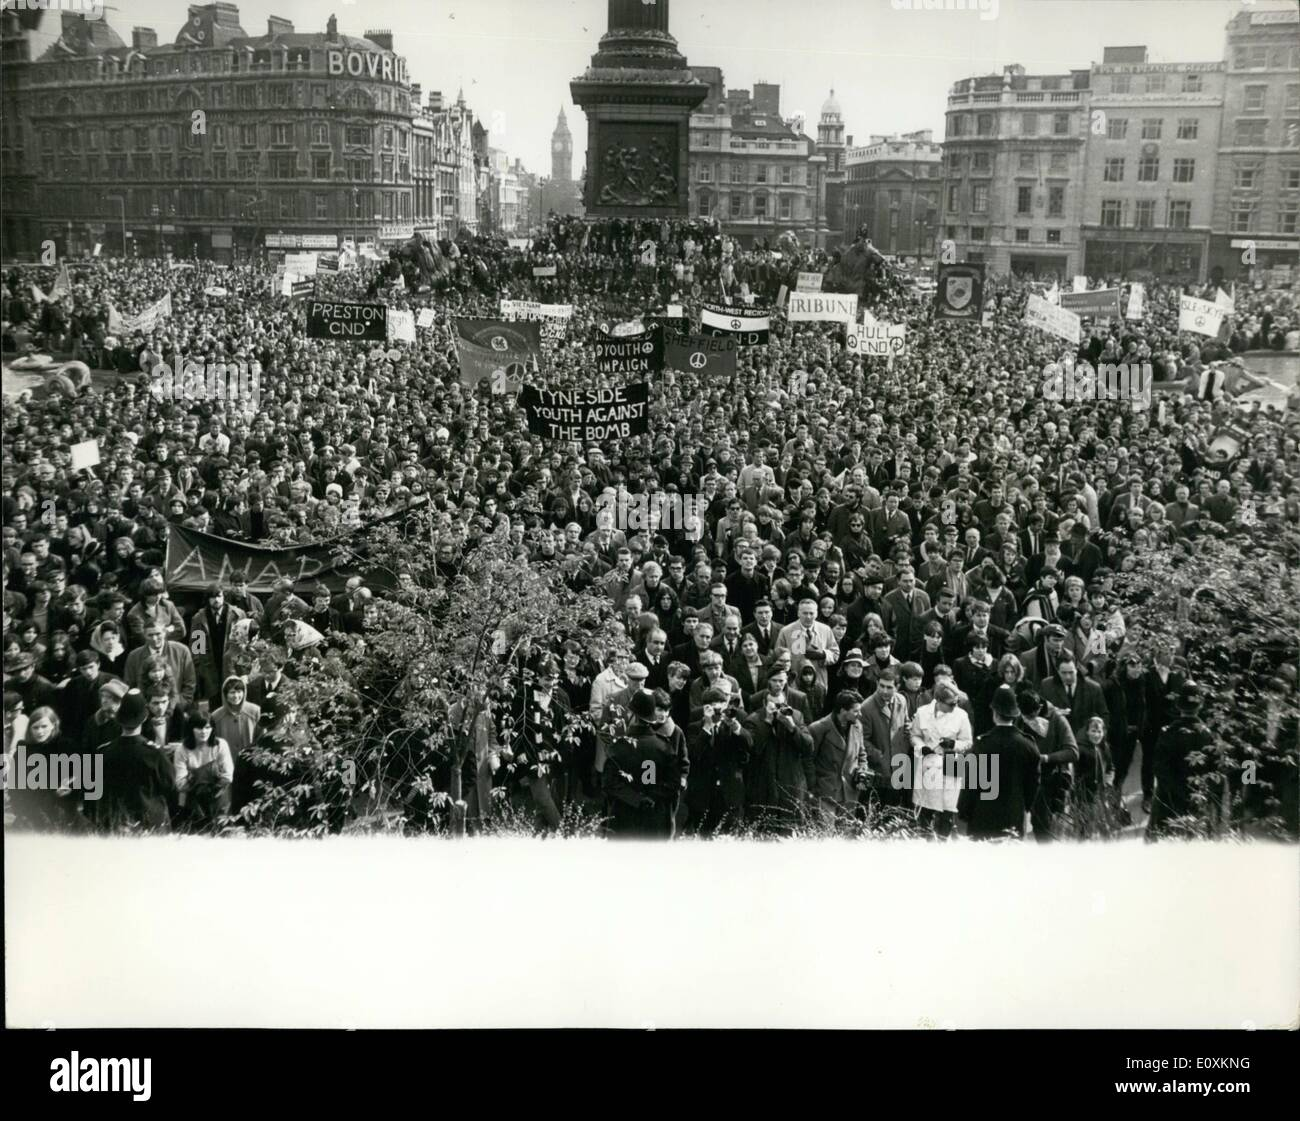 Mar. 03, 1967 - The Campaign for Nuclear Disarmament Two Day Easter March Ends With Rally in Trafalgar Square. The campaign for - Stock Image